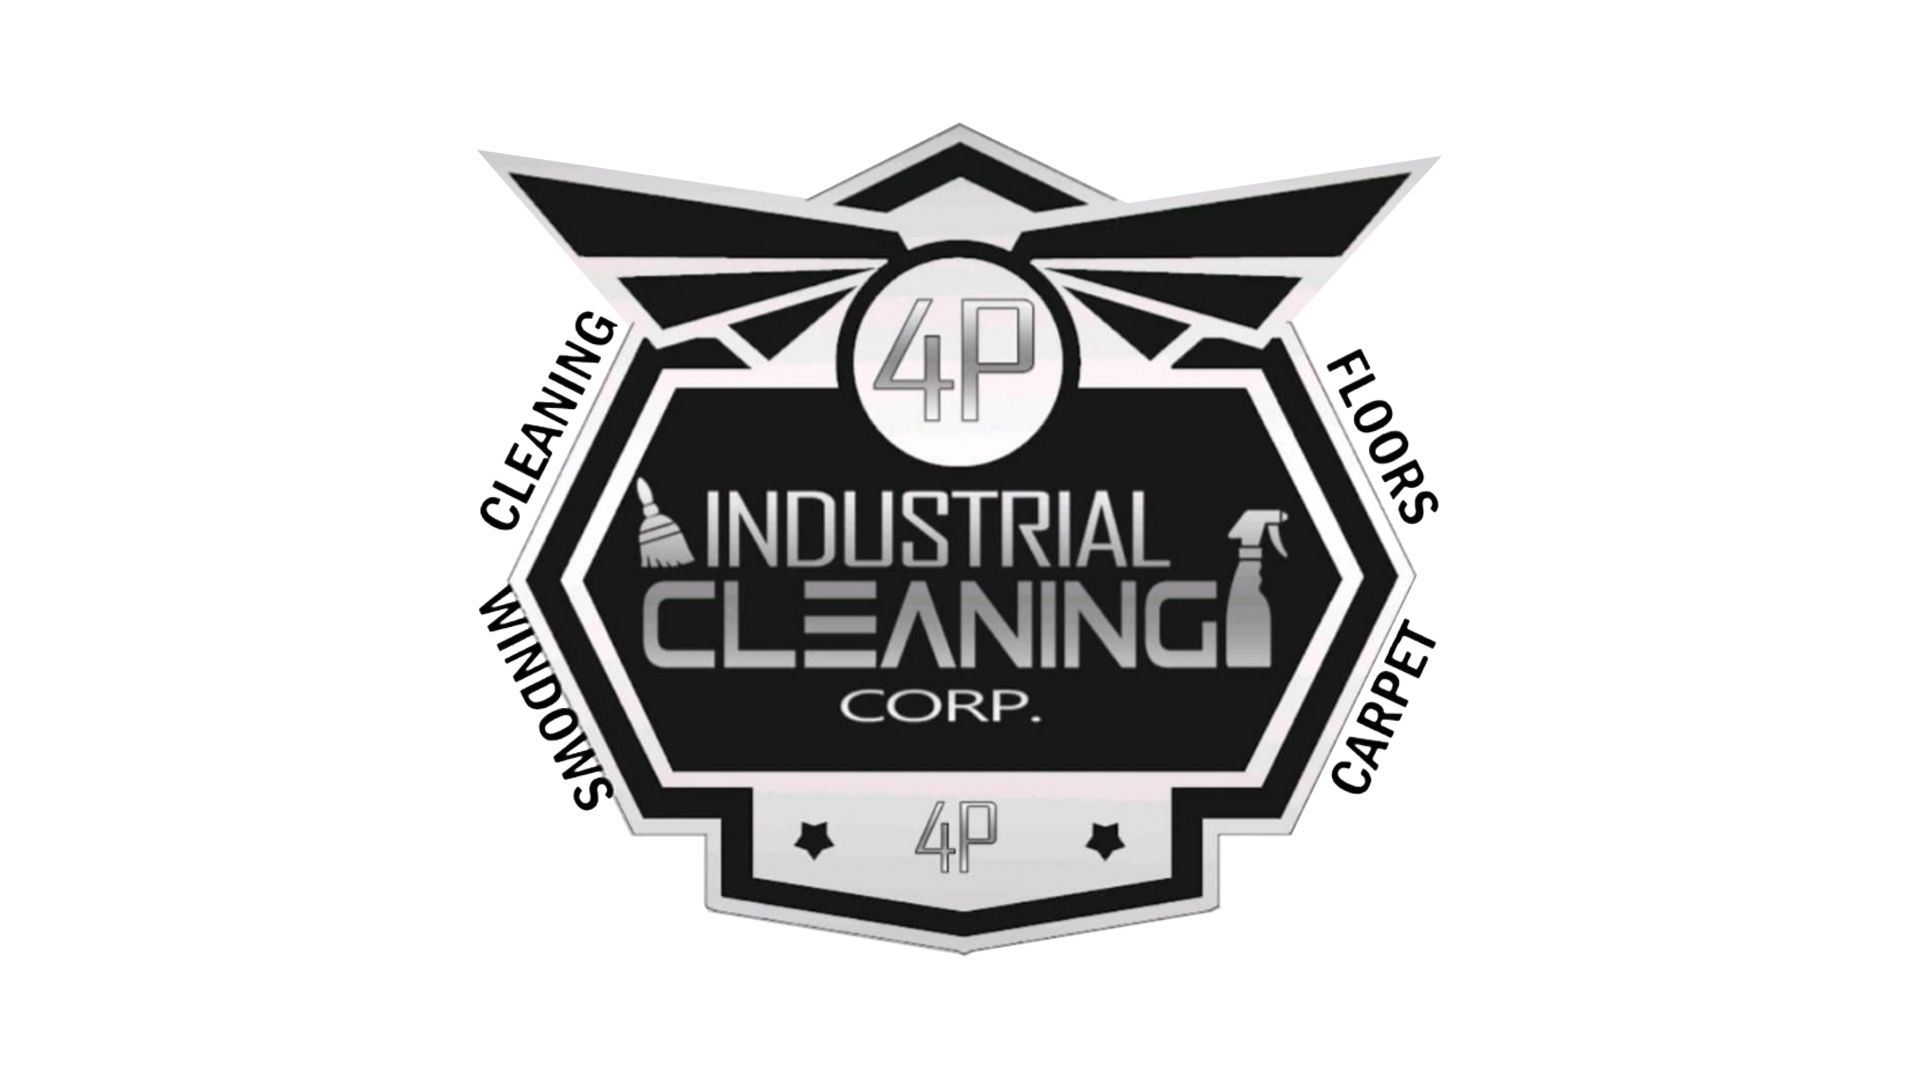 4P Industrial Cleaning Corporation